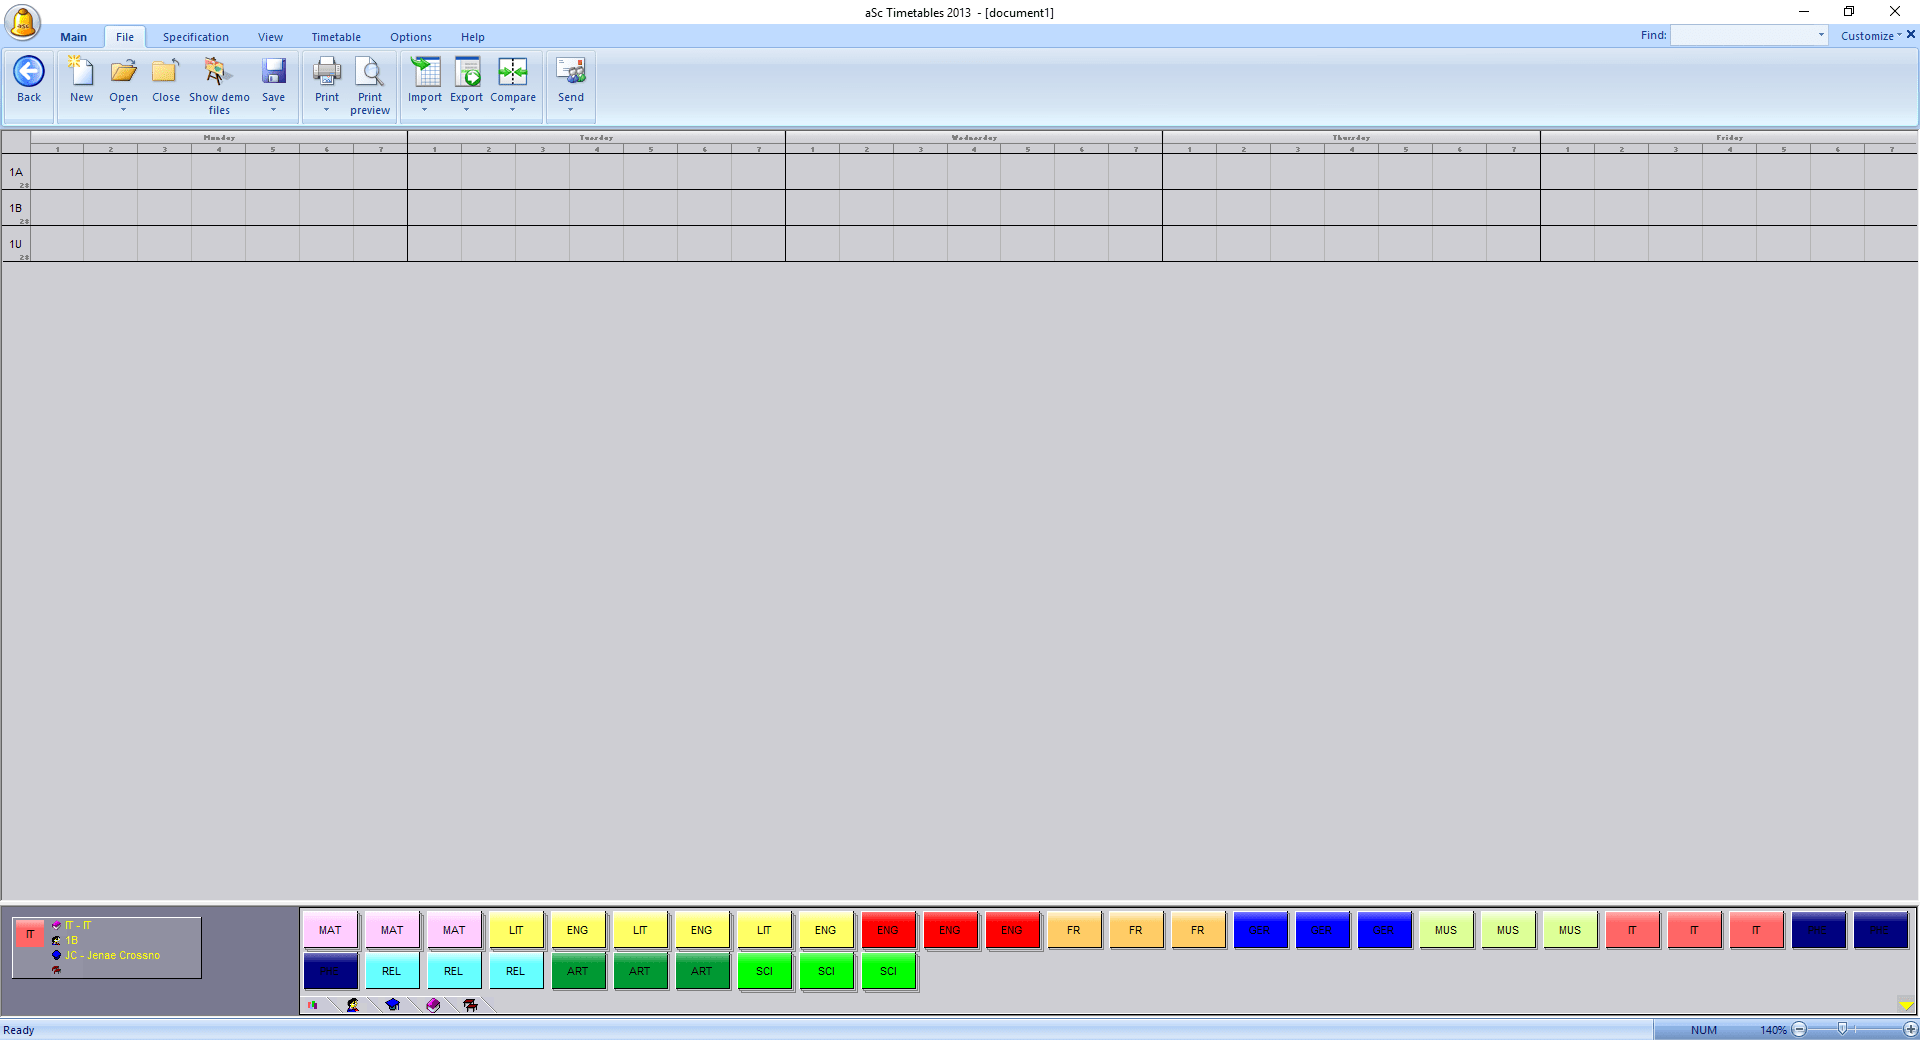 How to create a timetable in aSc TimeTables and import it to